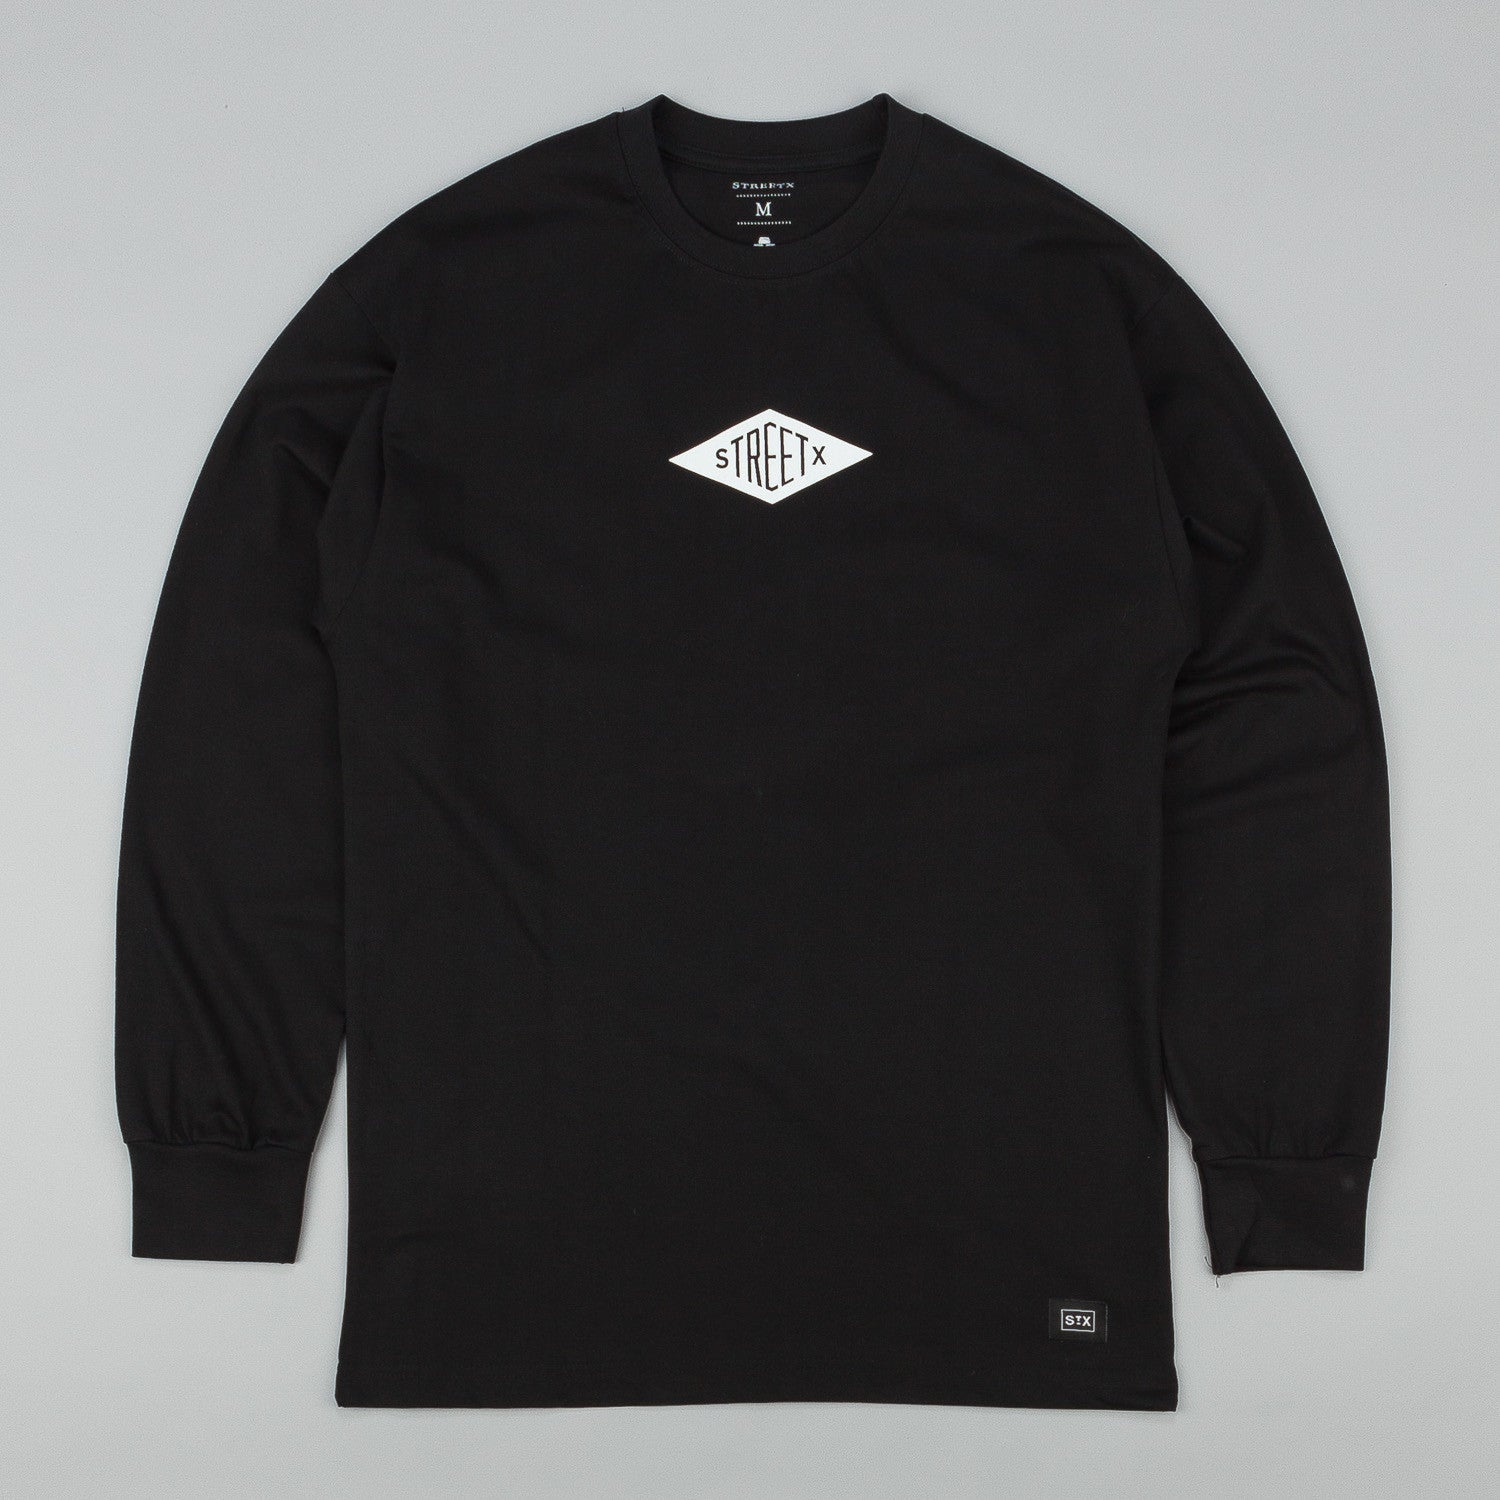 StreetX Essex Long Sleeve T-Shirt